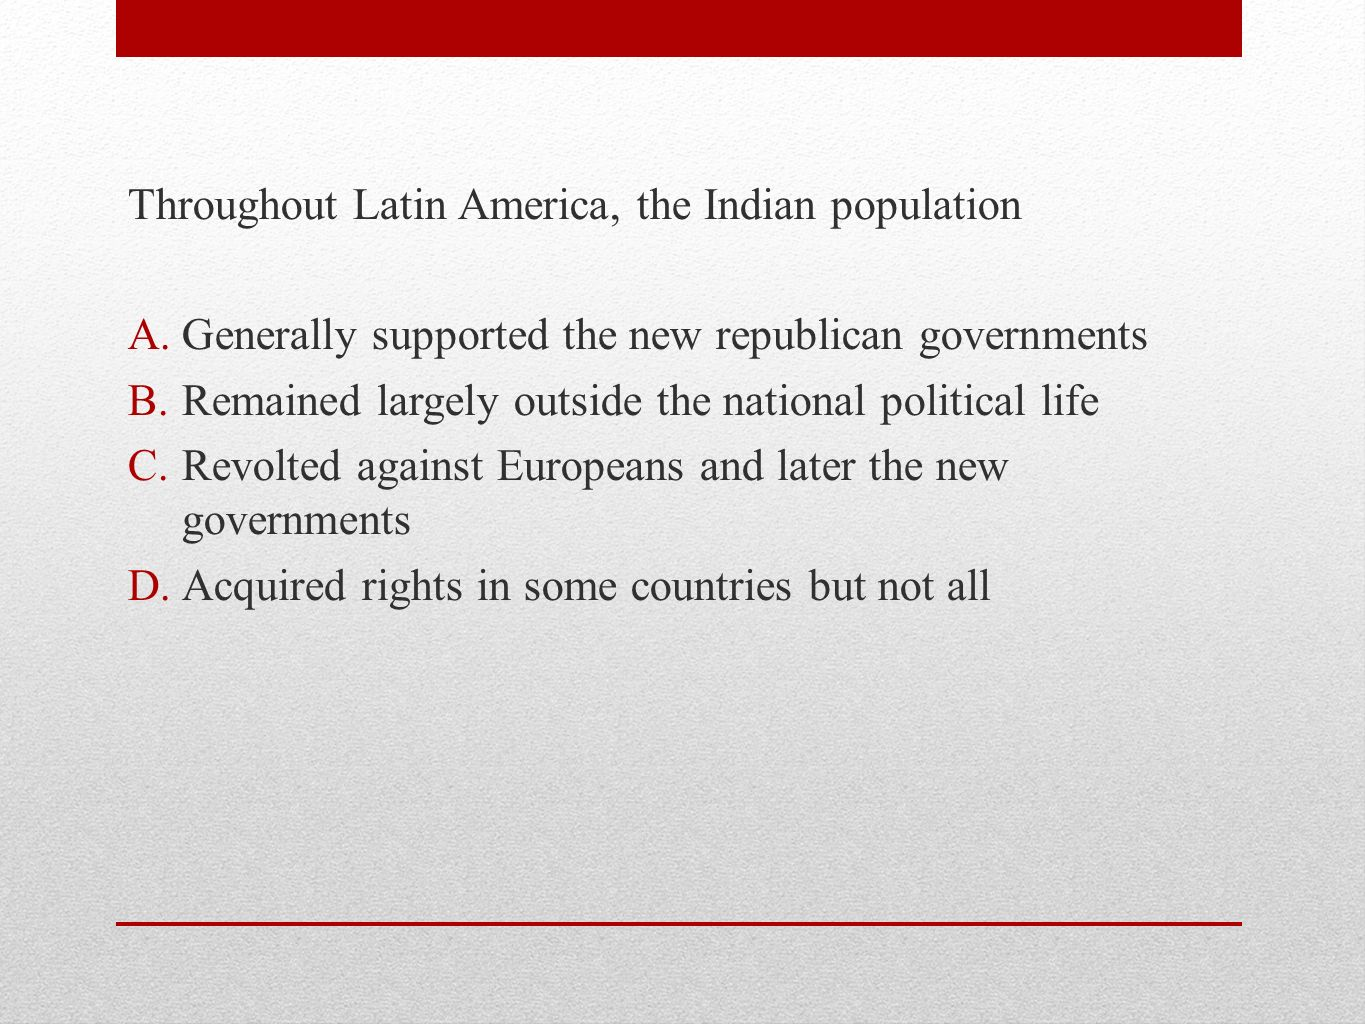 Throughout Latin America, the Indian population